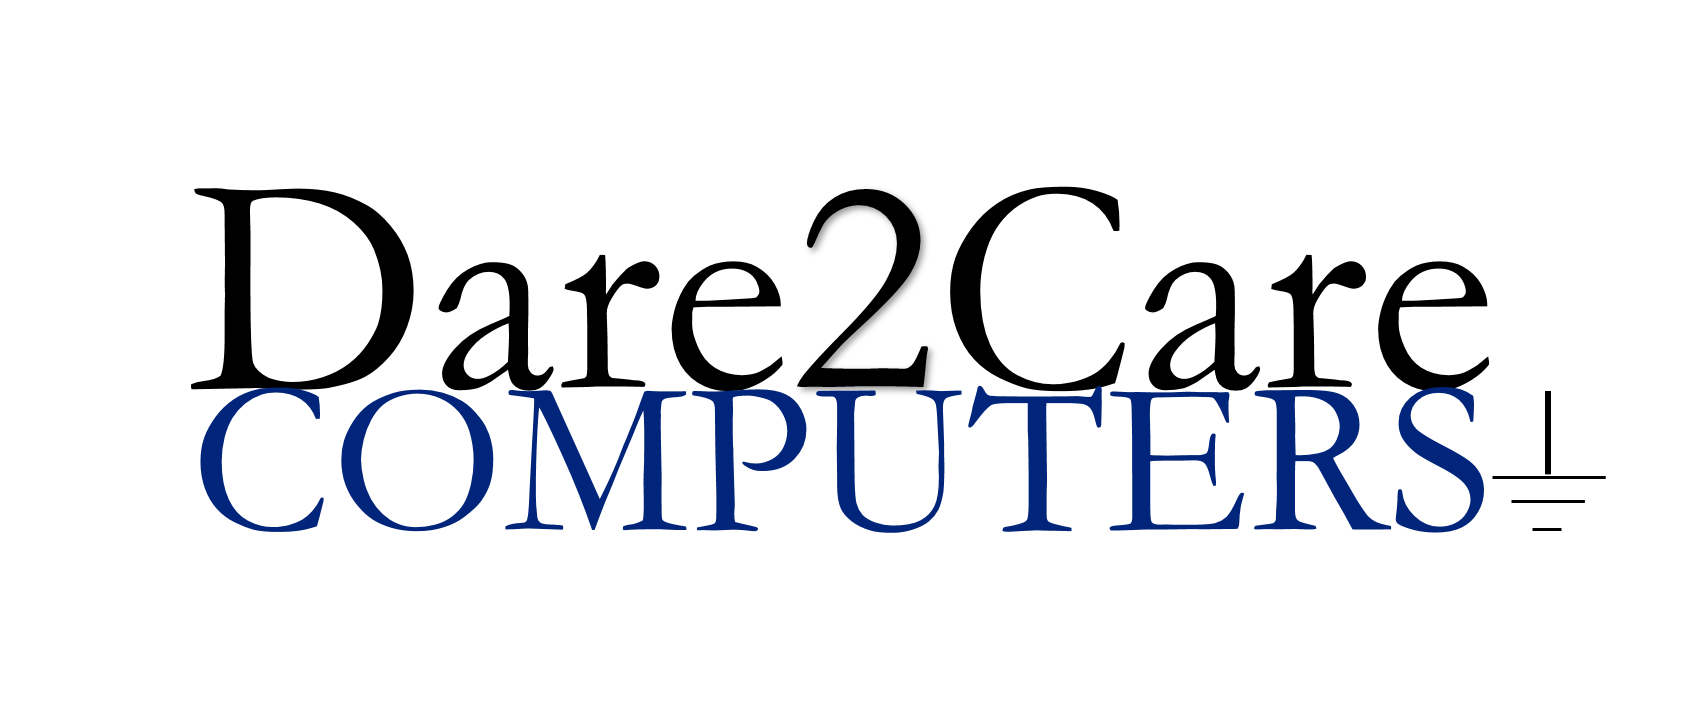 Dare2Care Computers